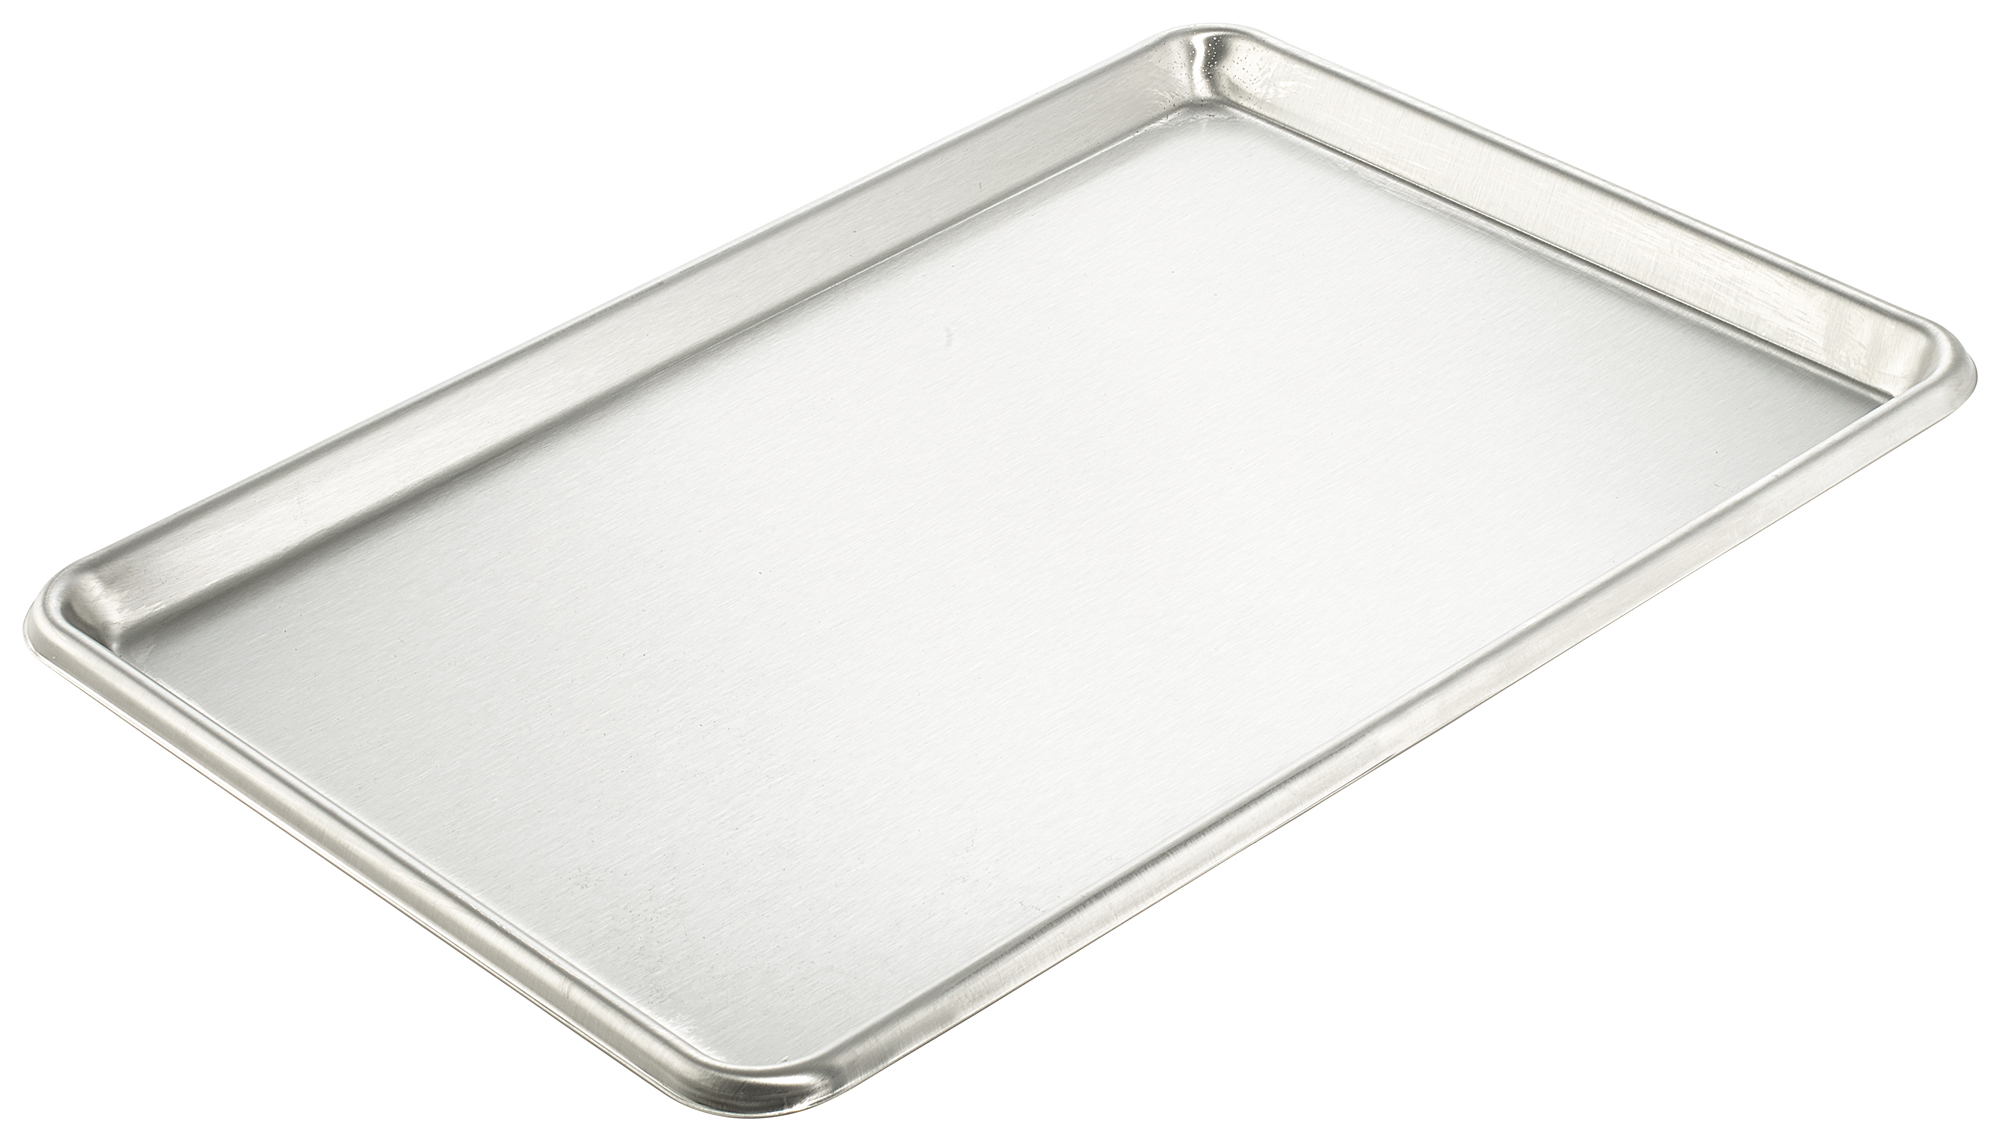 Winco SXP-1826 sheet pan